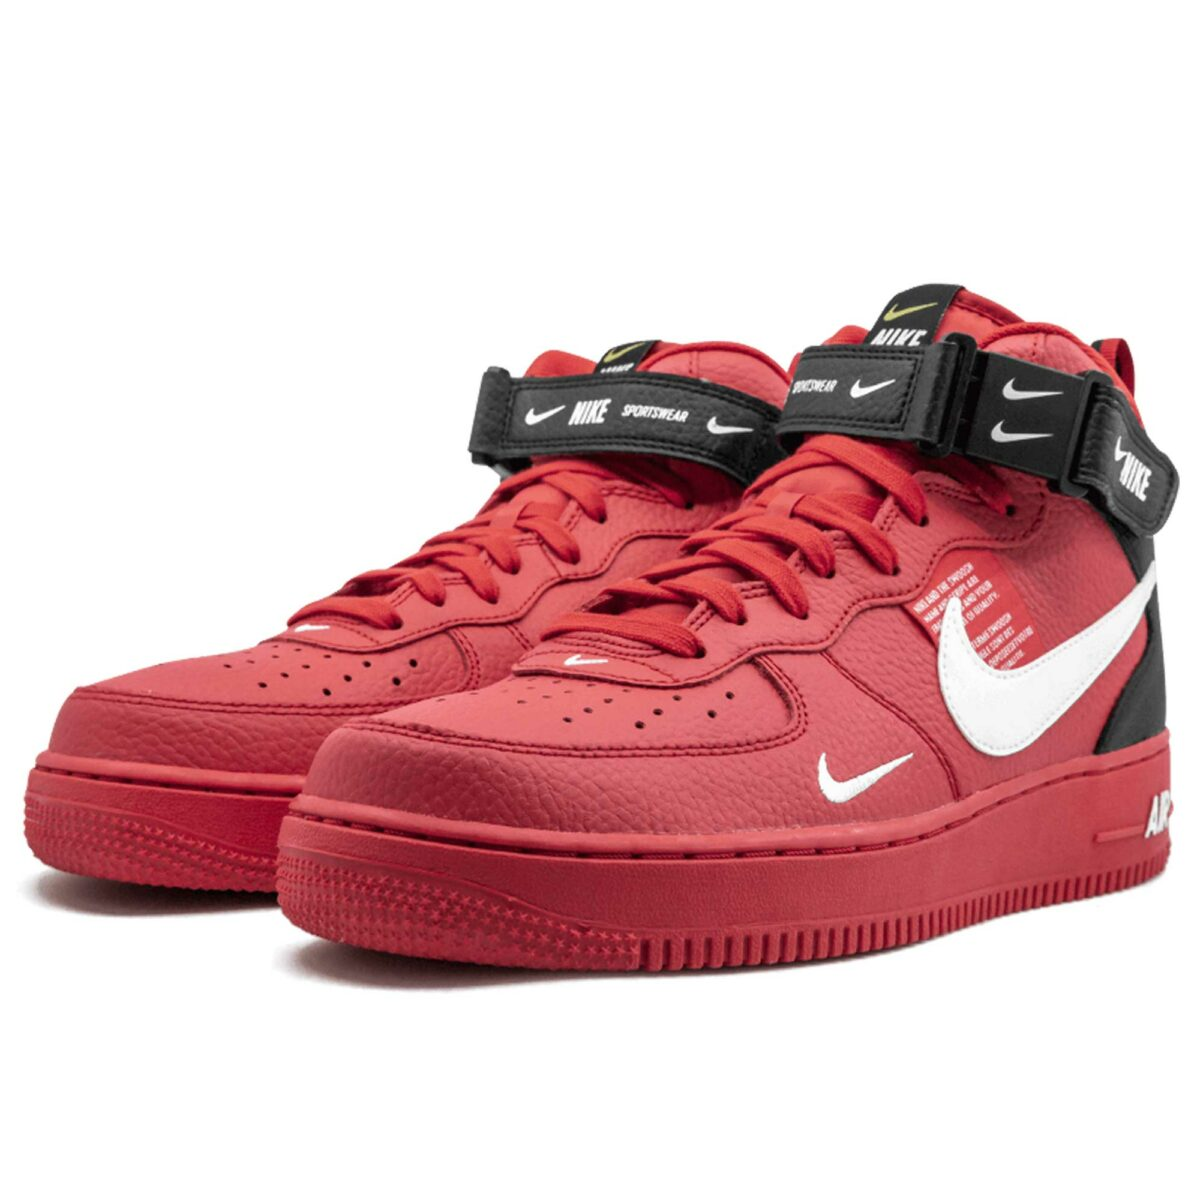 air force 1 mid 07 lv8 red 804609-605 купить